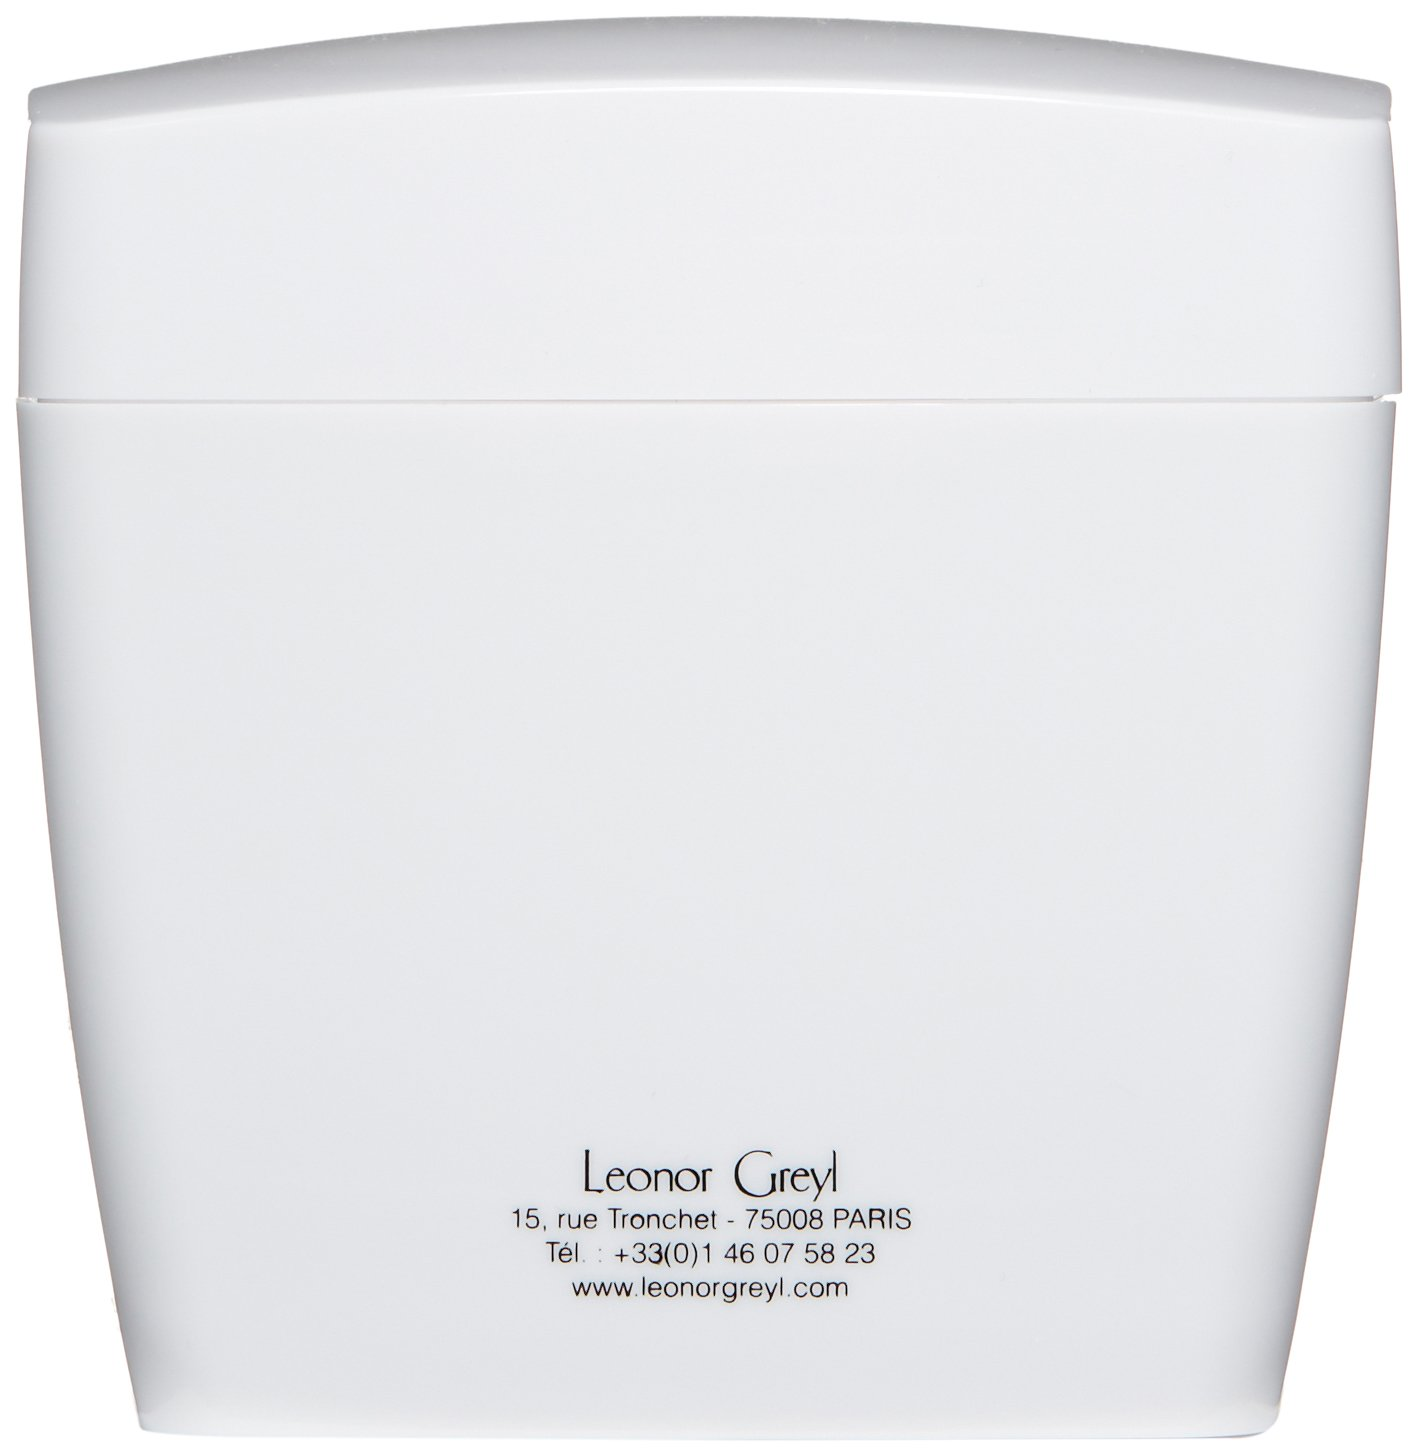 Leonor Greyl Paris Masque A L'Orchidee - Deep Conditioning Mask for Dry, Thick or Frizzy Hair, 7 oz. by Leonor Greyl Paris (Image #5)